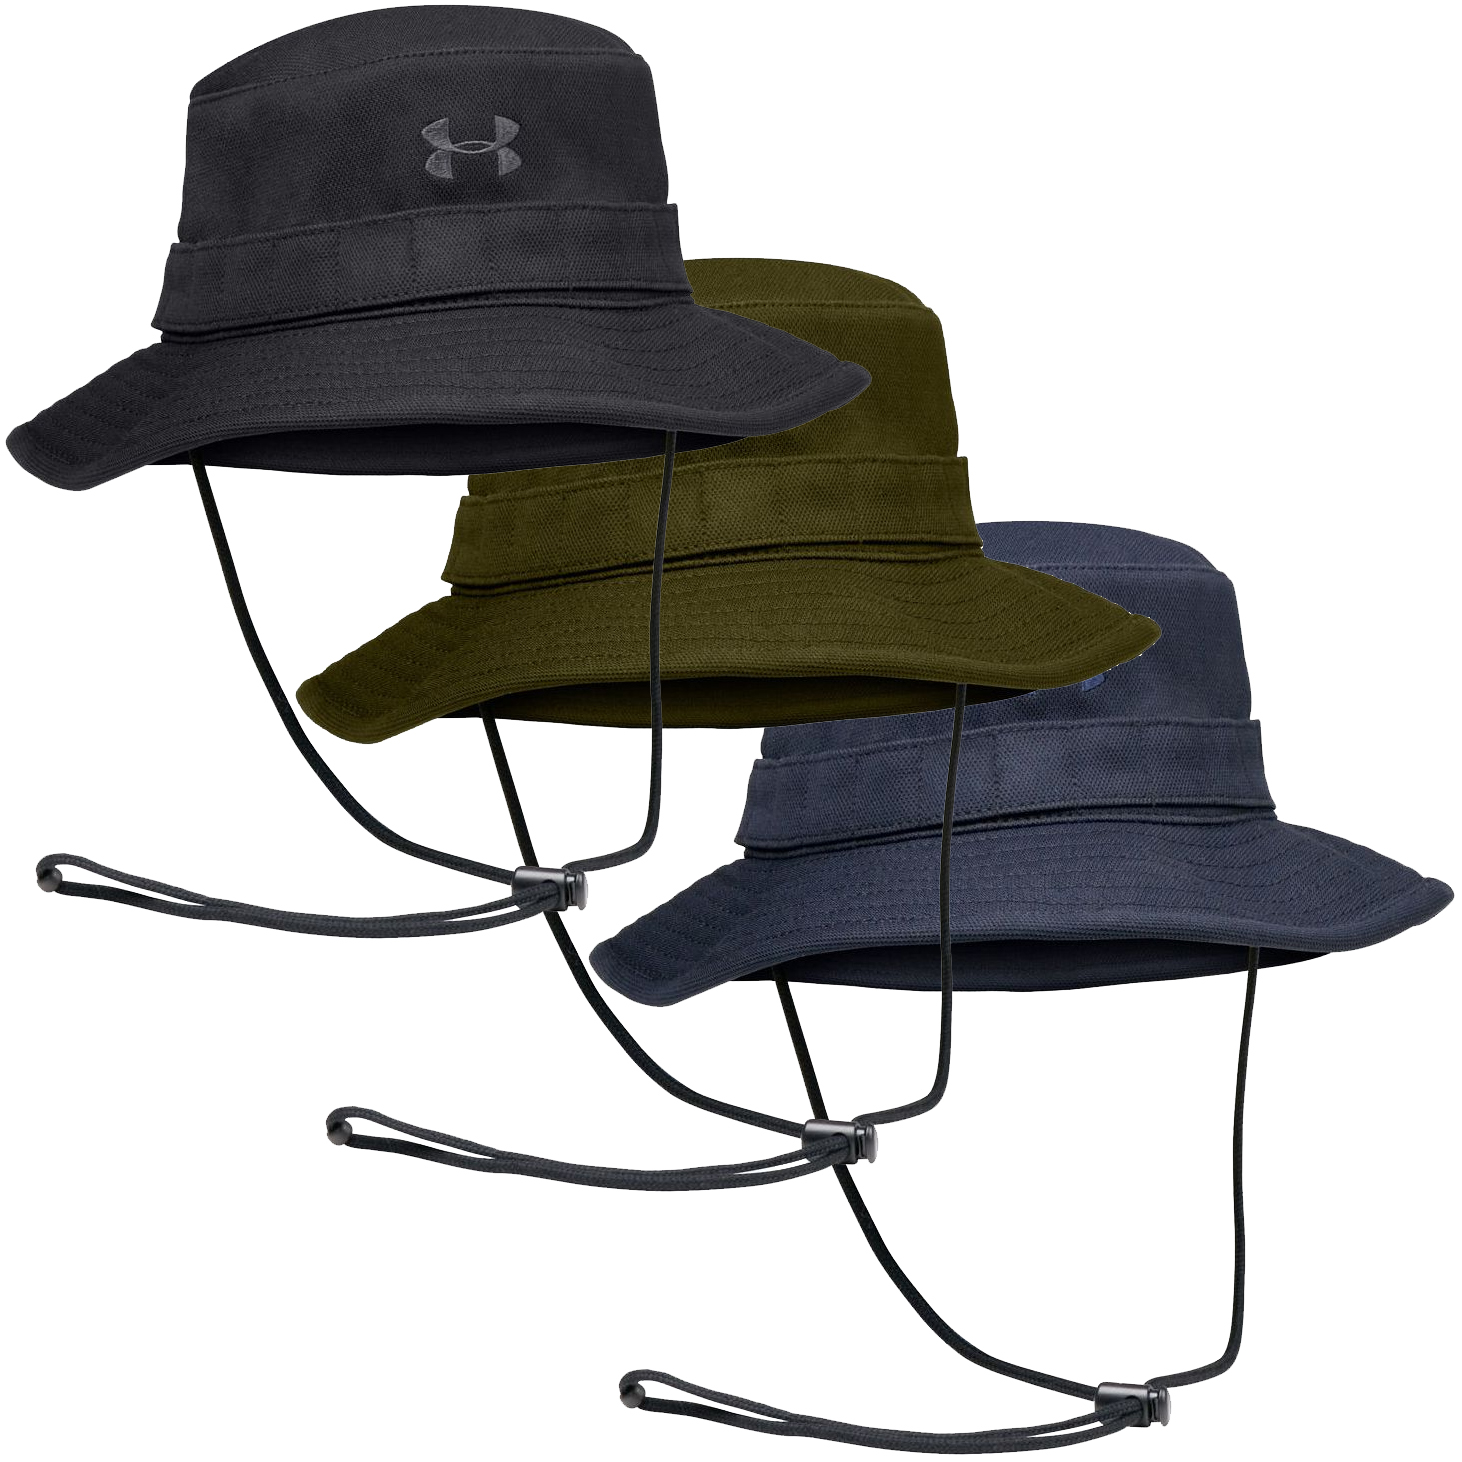 Cheap under armour bucket hat with string Buy Online  OFF67% Discounted b1d29d20a1c